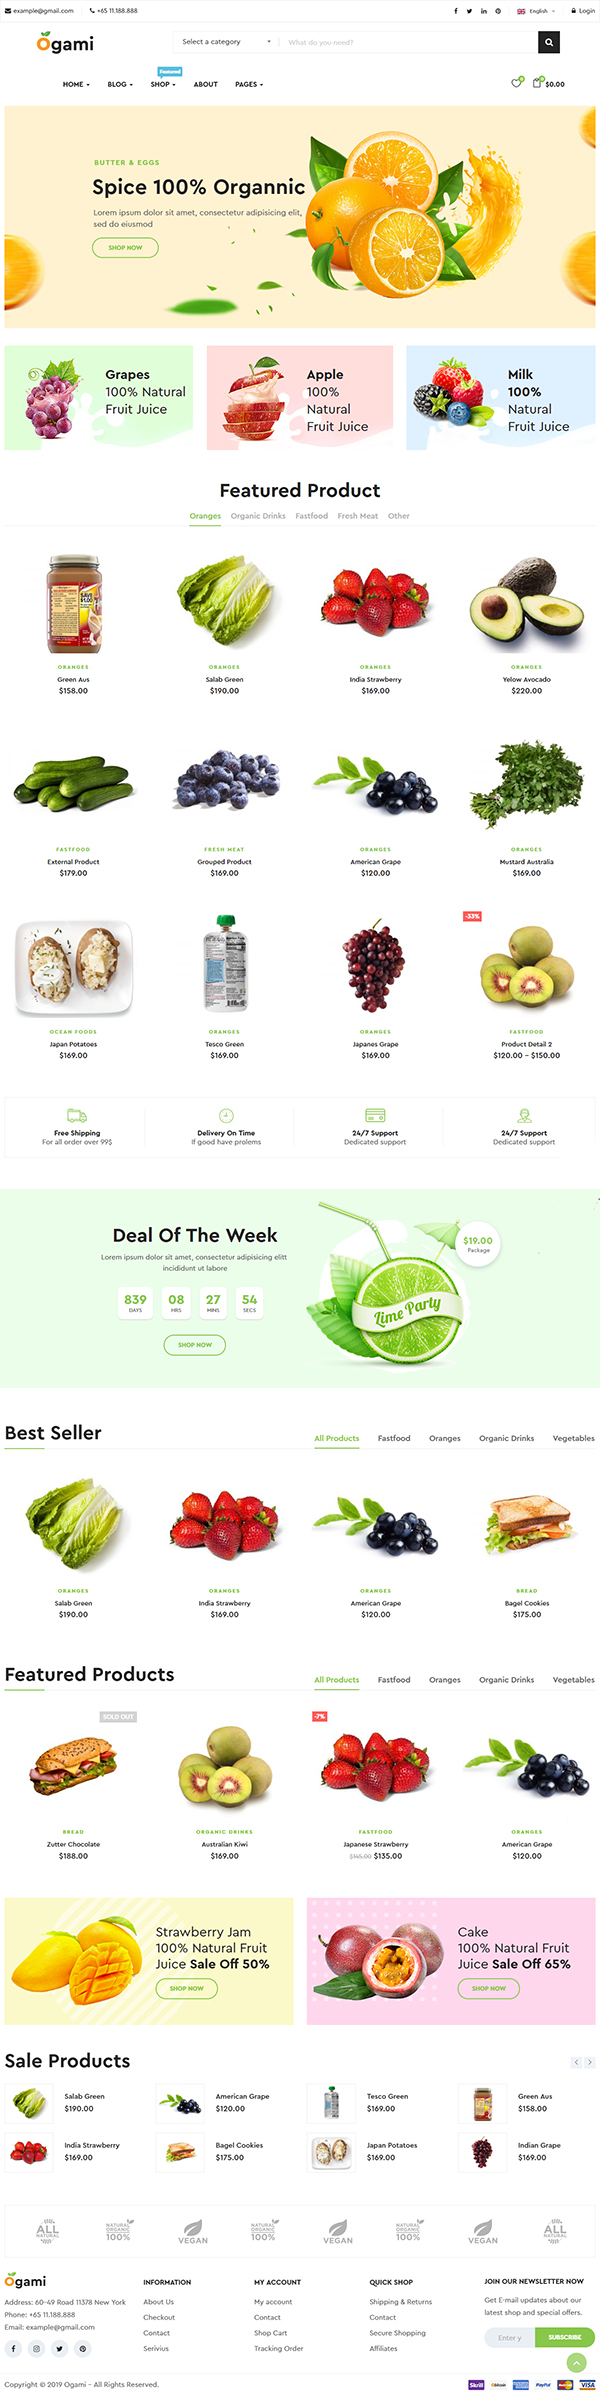 Ogami - Organic Store & Bakery WordPress Theme